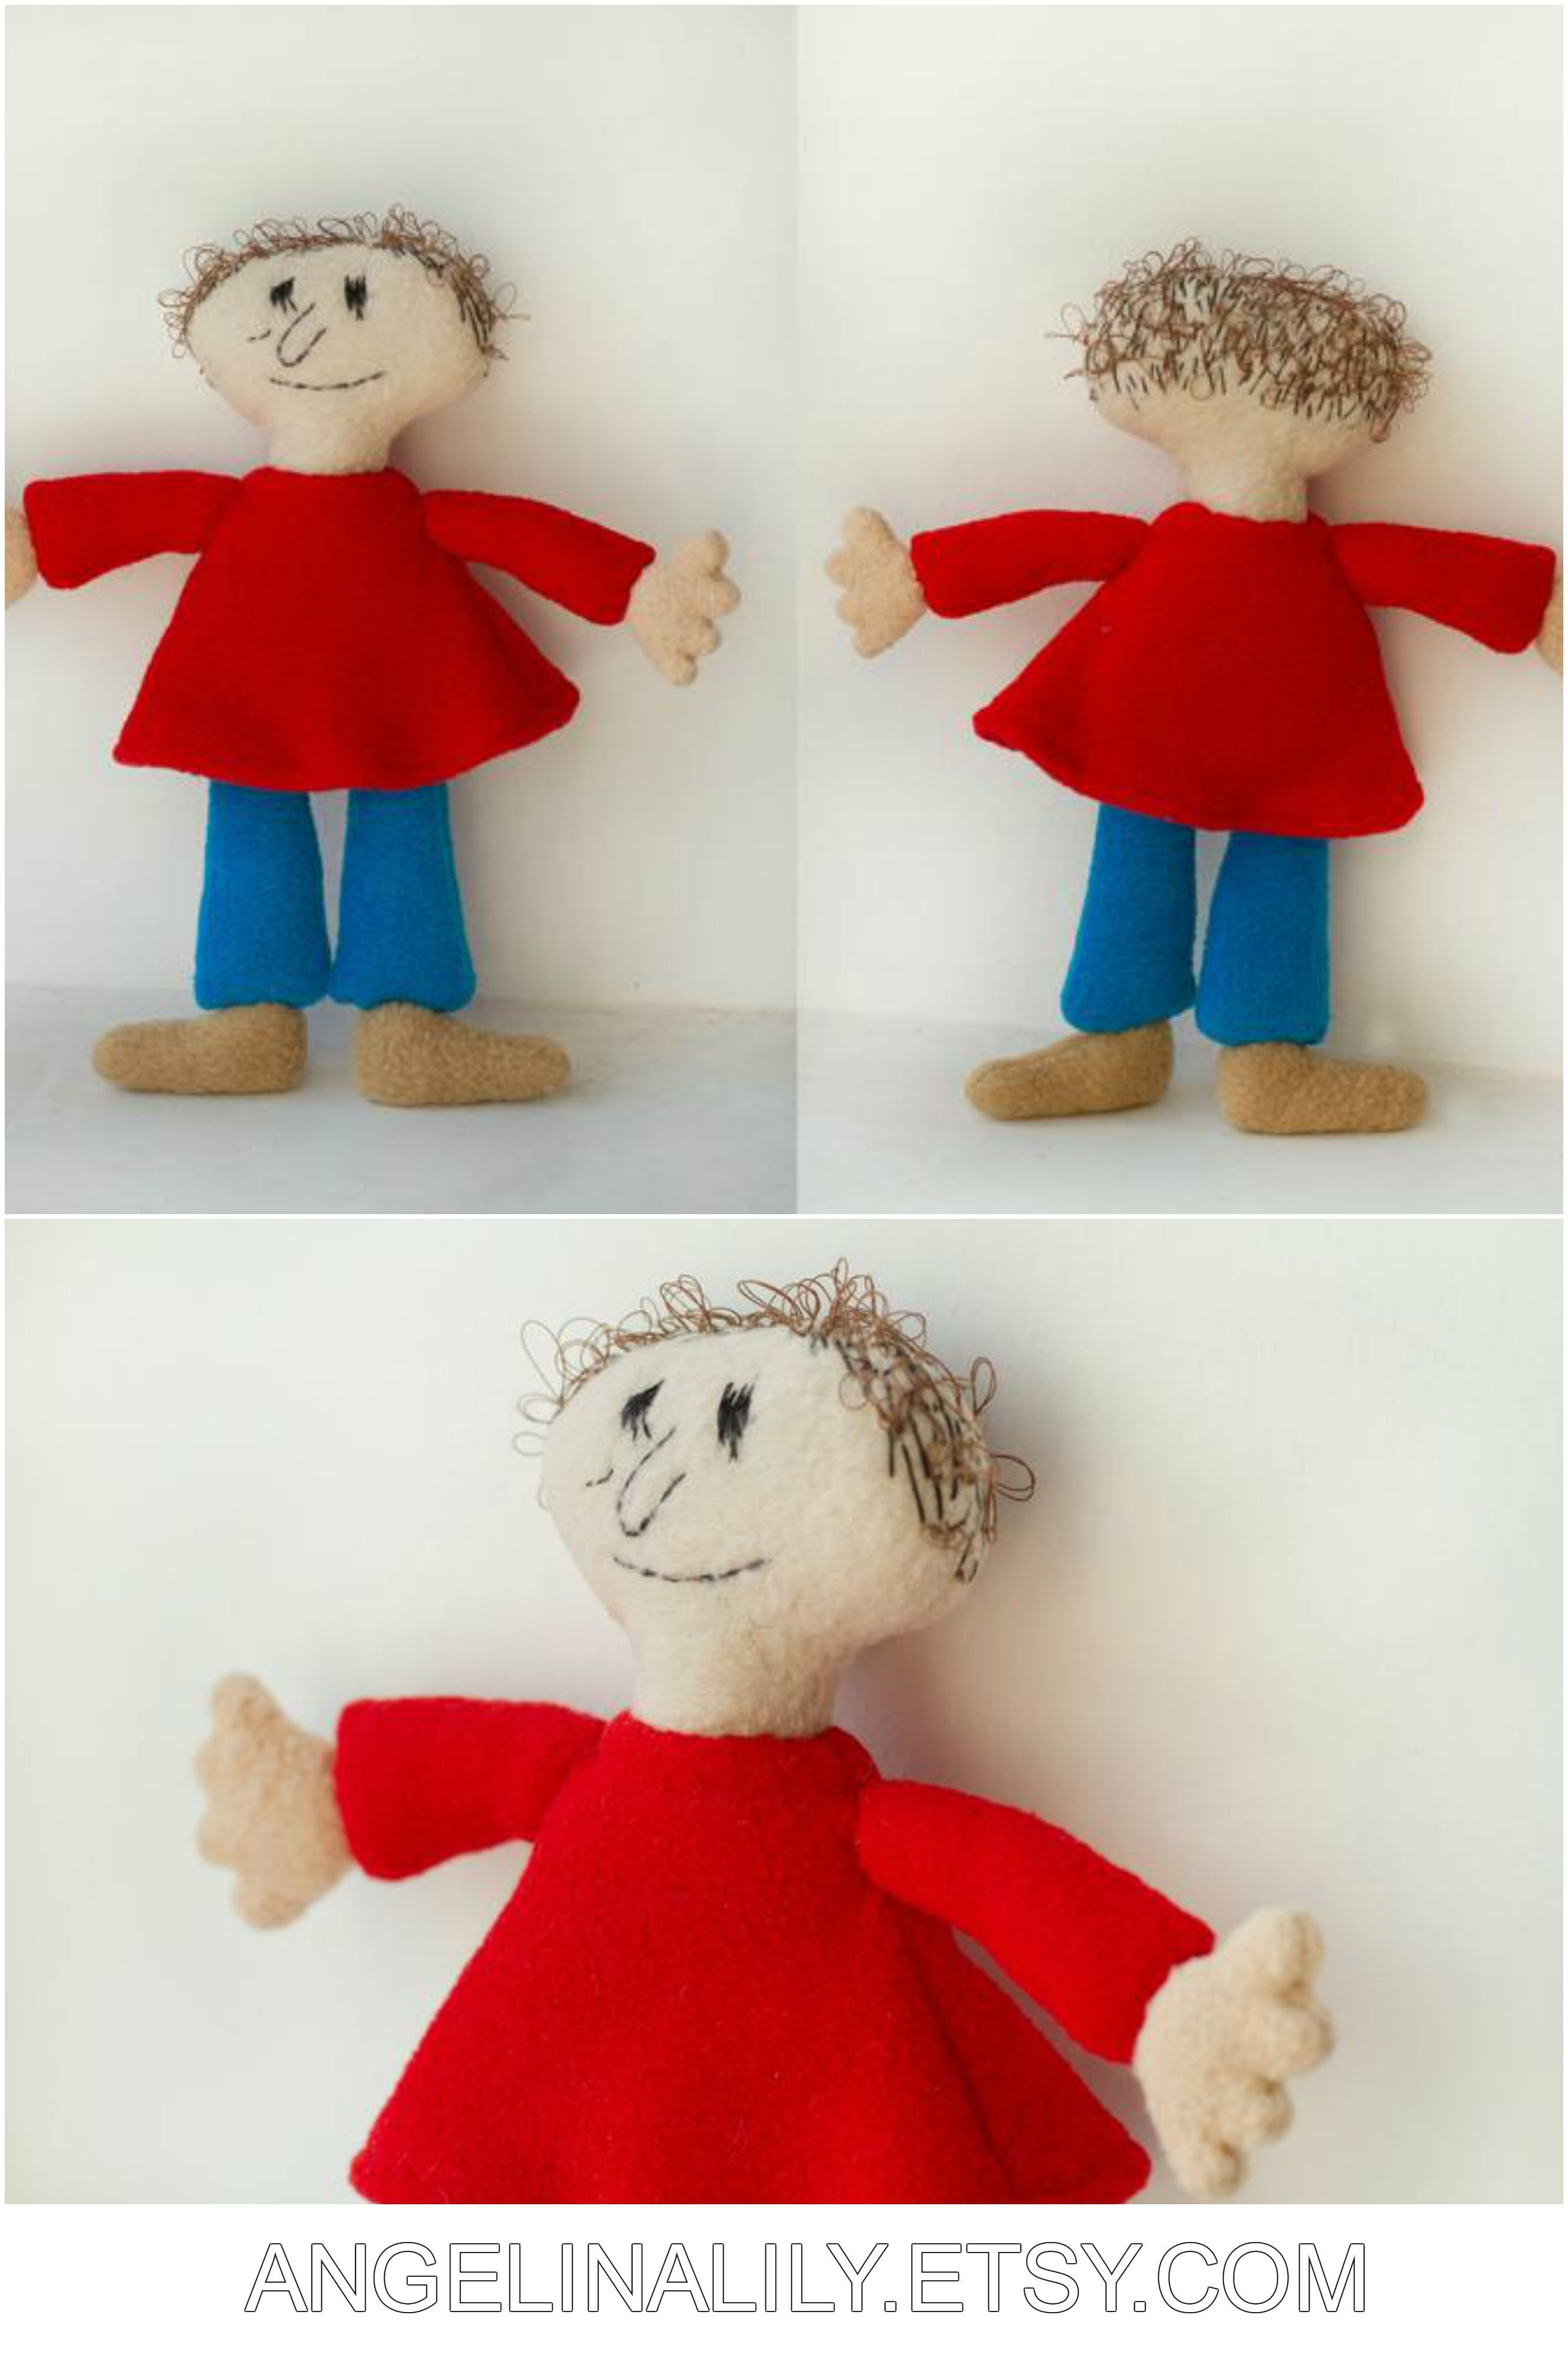 Playtime Plush Handmade Soft Doll 9 In High S Izobrazheniyami